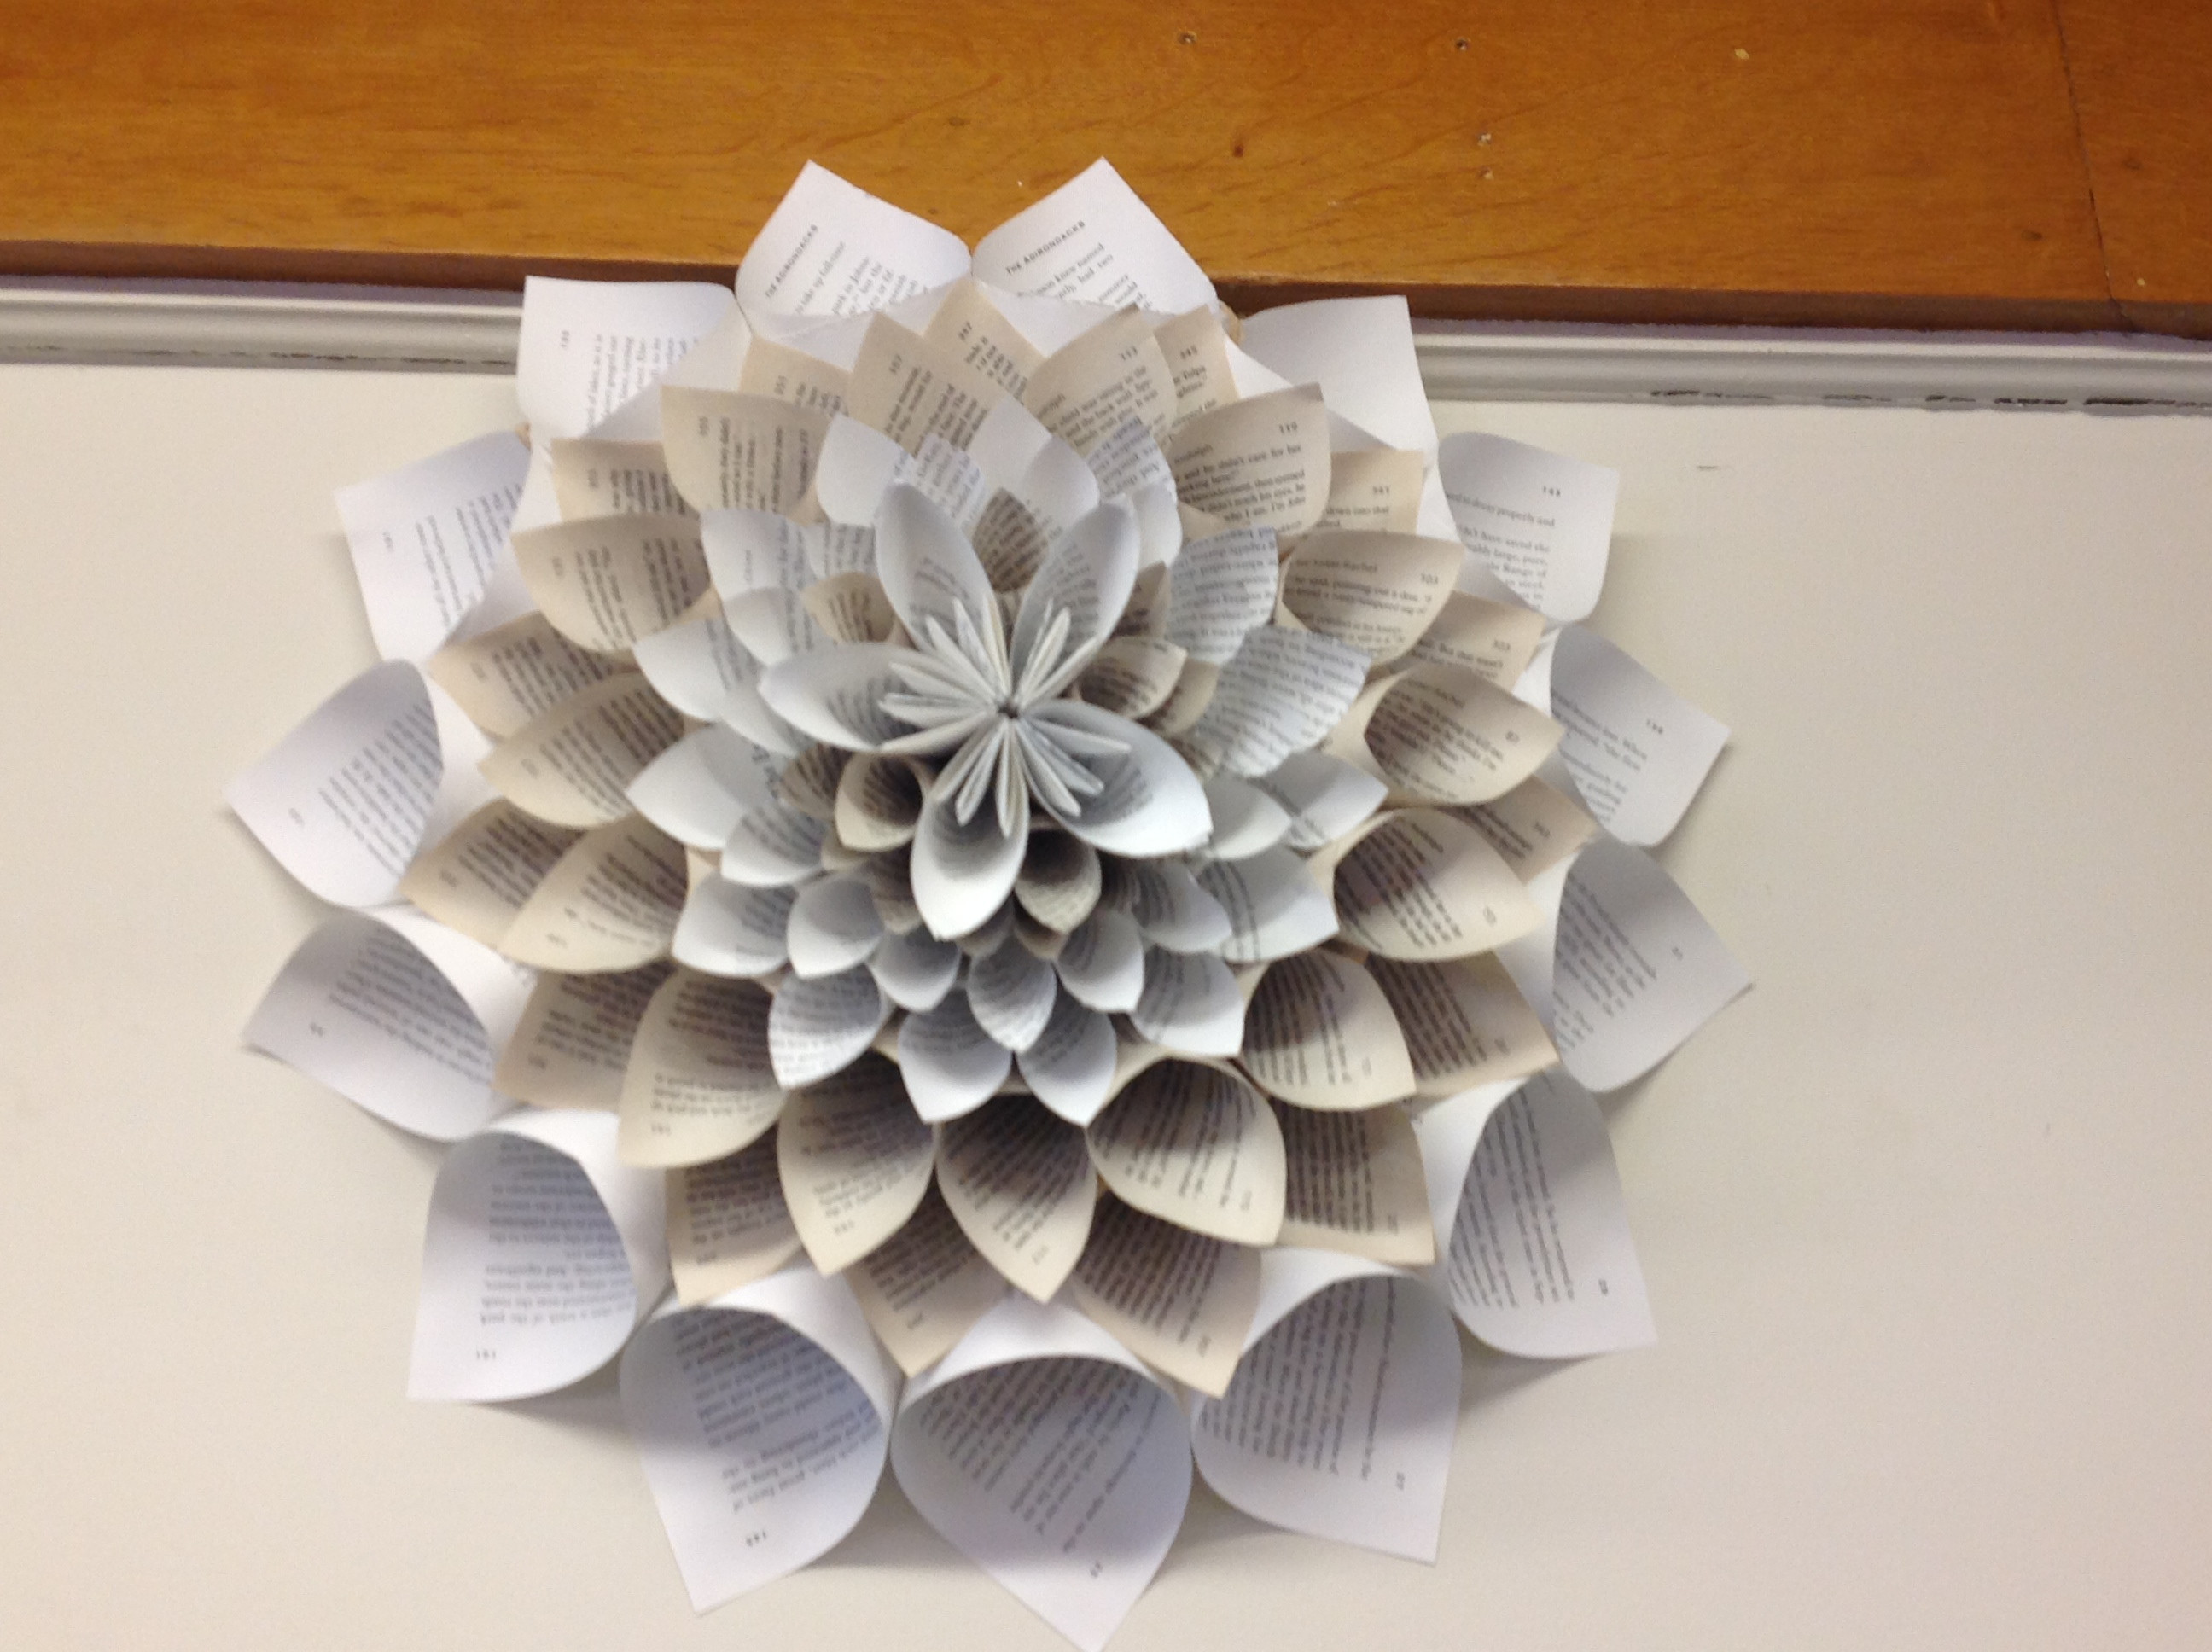 Best ideas about Craft Project Ideas For Adults . Save or Pin Book Craft at Greenfield Public Library Library as Now.